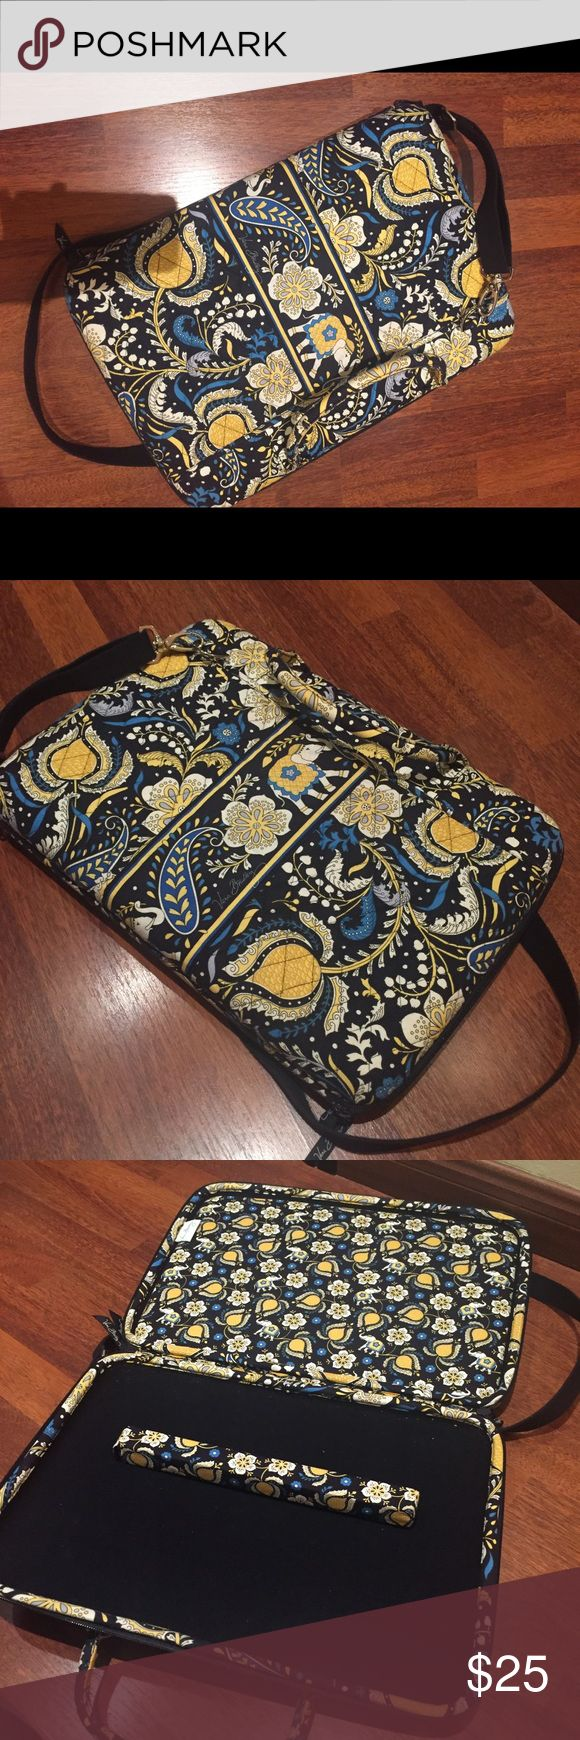 """Vera Bradley laptop bag (attaché) with strap Hard bag perfect for travel comes with strap. 15.5"""" W x 11"""" H x 1.75"""" D, barely used Vera Bradley Bags Laptop Bags"""